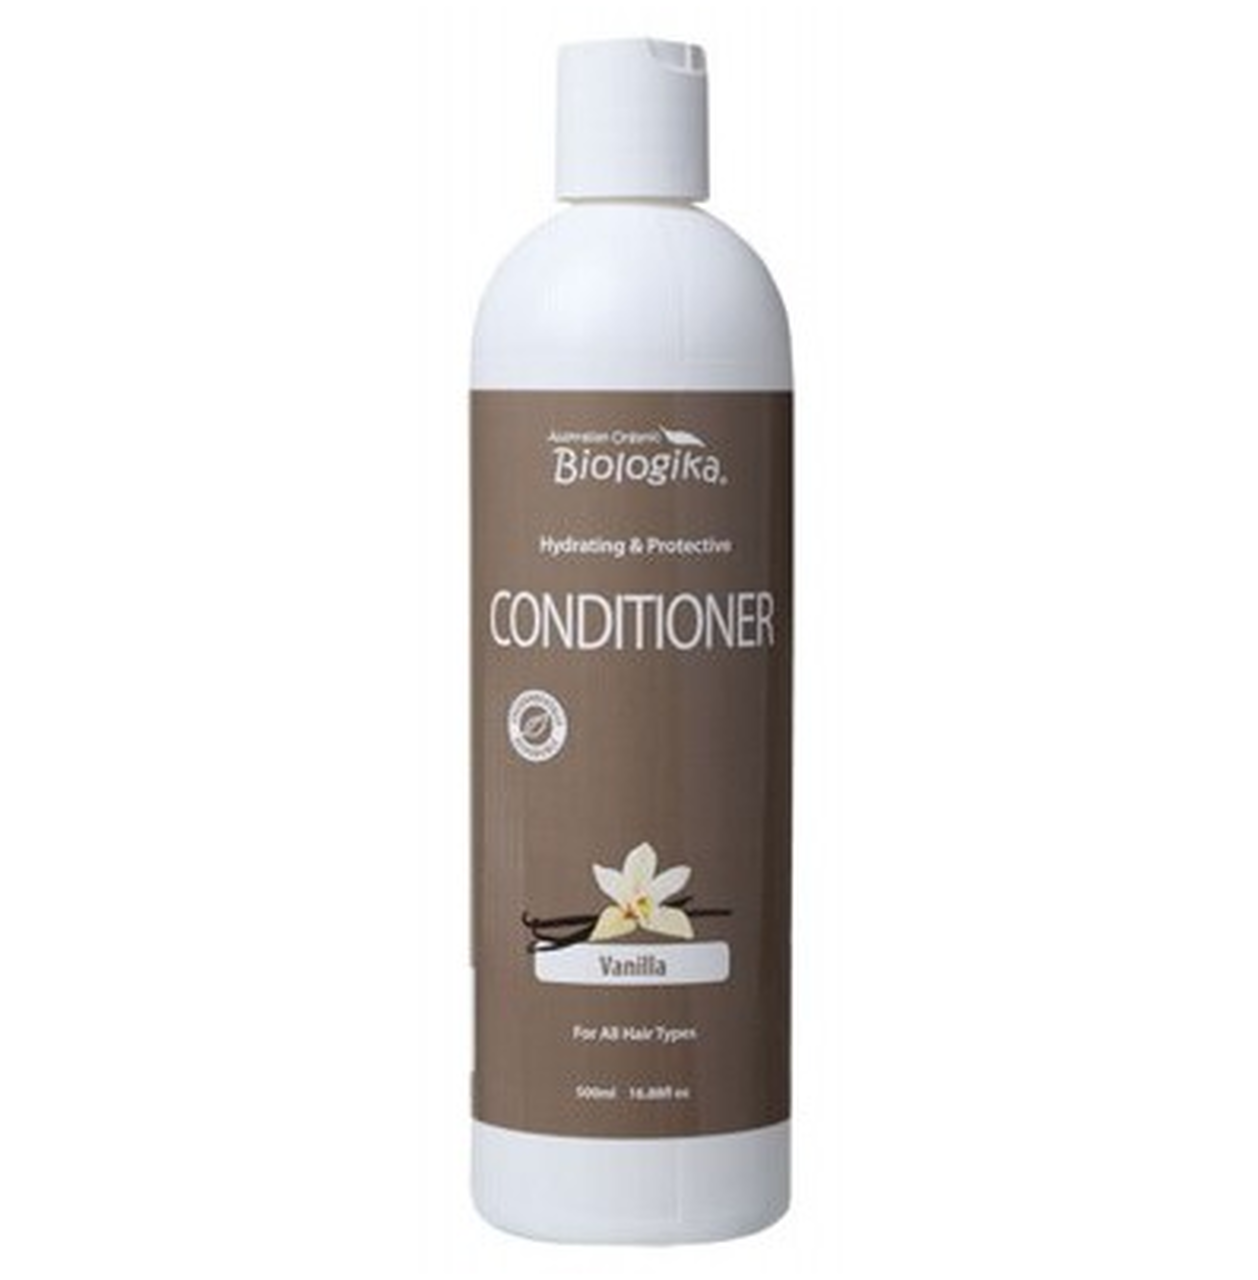 BIOLOGIKA Conditioner Vanilla 500ml